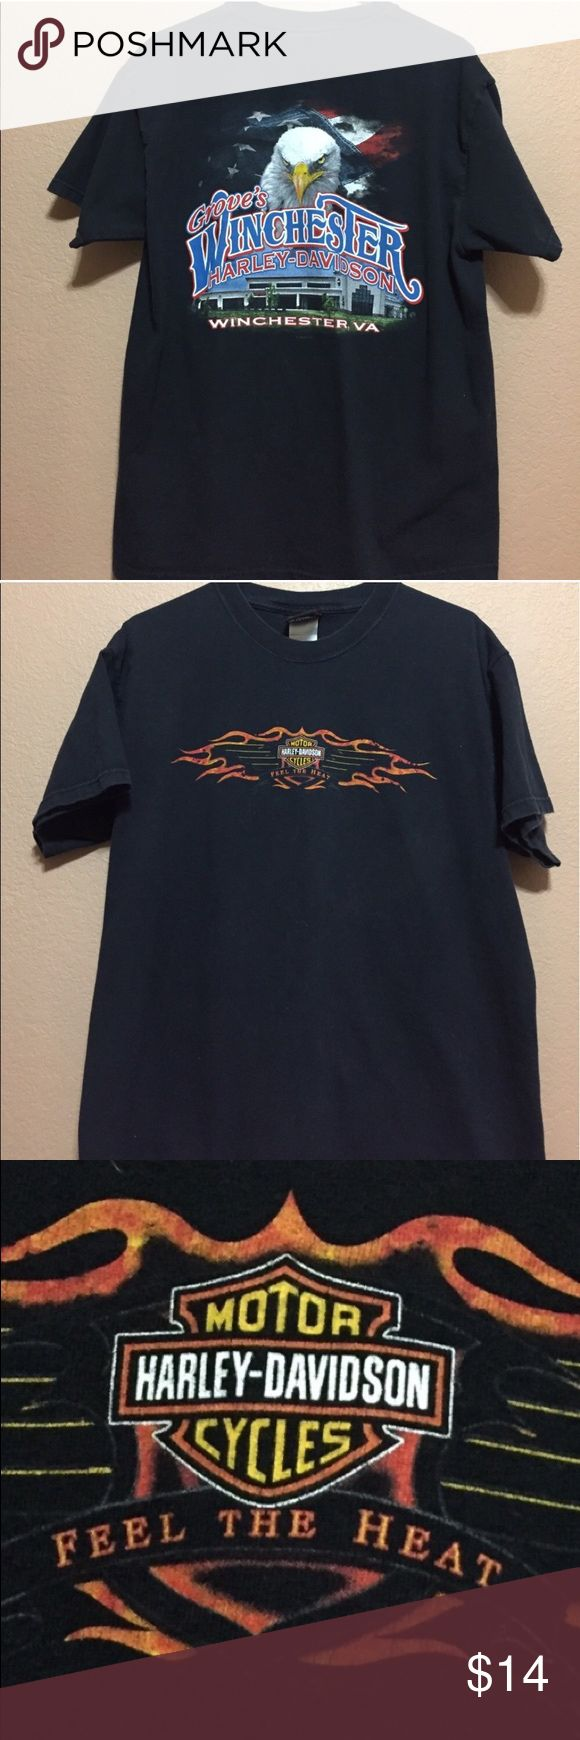 """2008 Harley Davidson Winchester VA Tshirt Tshirt is almost a decade old so shows signs of fading and graphic has some minor cracking. But still has awesome character and great for the HD enthusiast who likes collecting HD tshirts. Eagle is on the back. Size Large. Measurements: underarm to underarm 21"""". length 27.5"""" 🏍 Harley-Davidson Shirts Tees - Short Sleeve"""